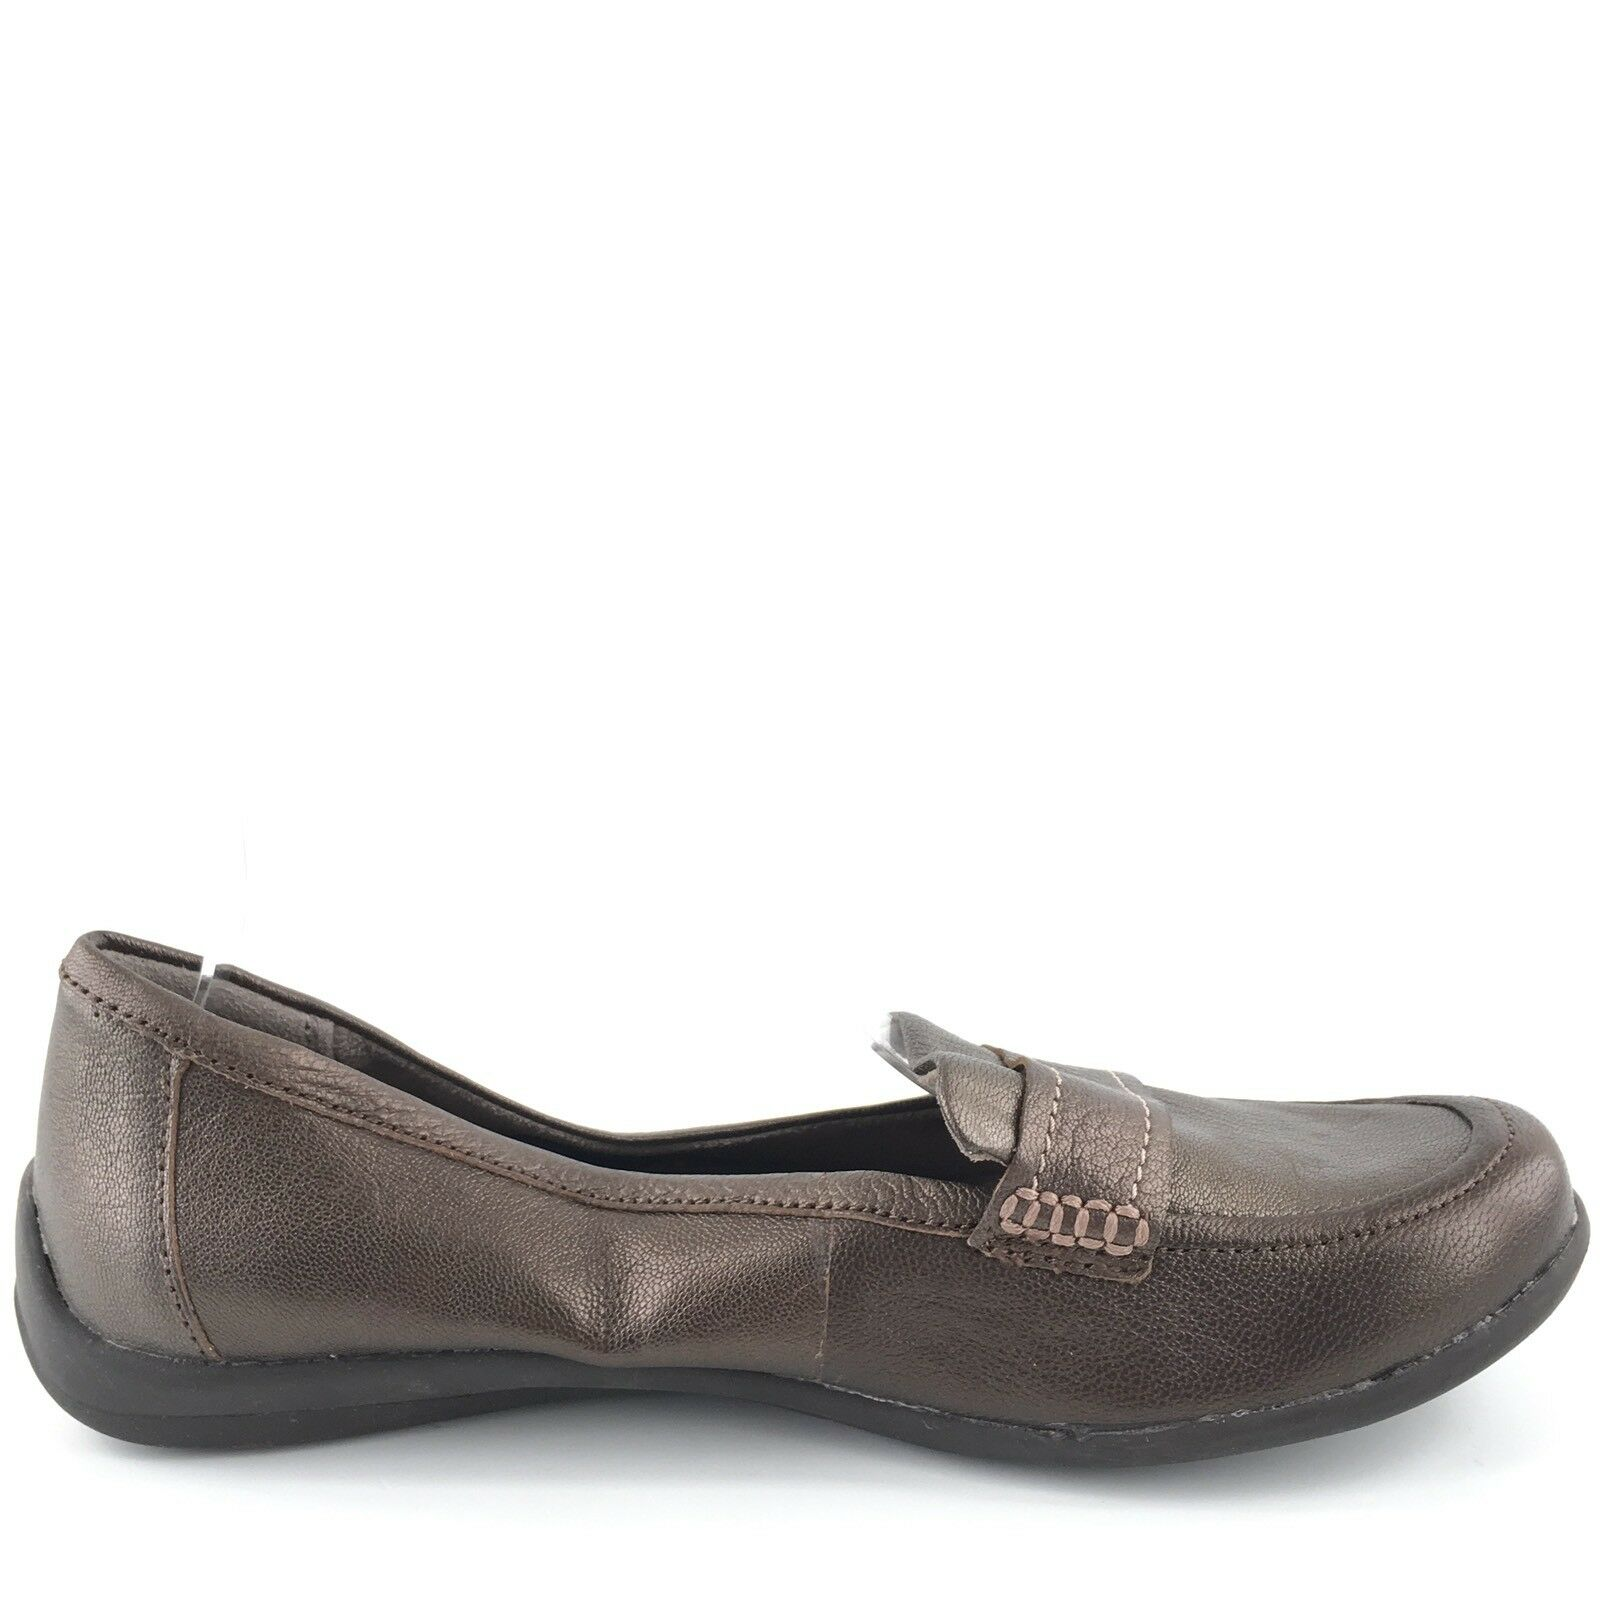 Naturalizer Denise Comfort Nickel Metallic Casual Comfort Denise Loafers Donna's Size 9 M 19bfb3